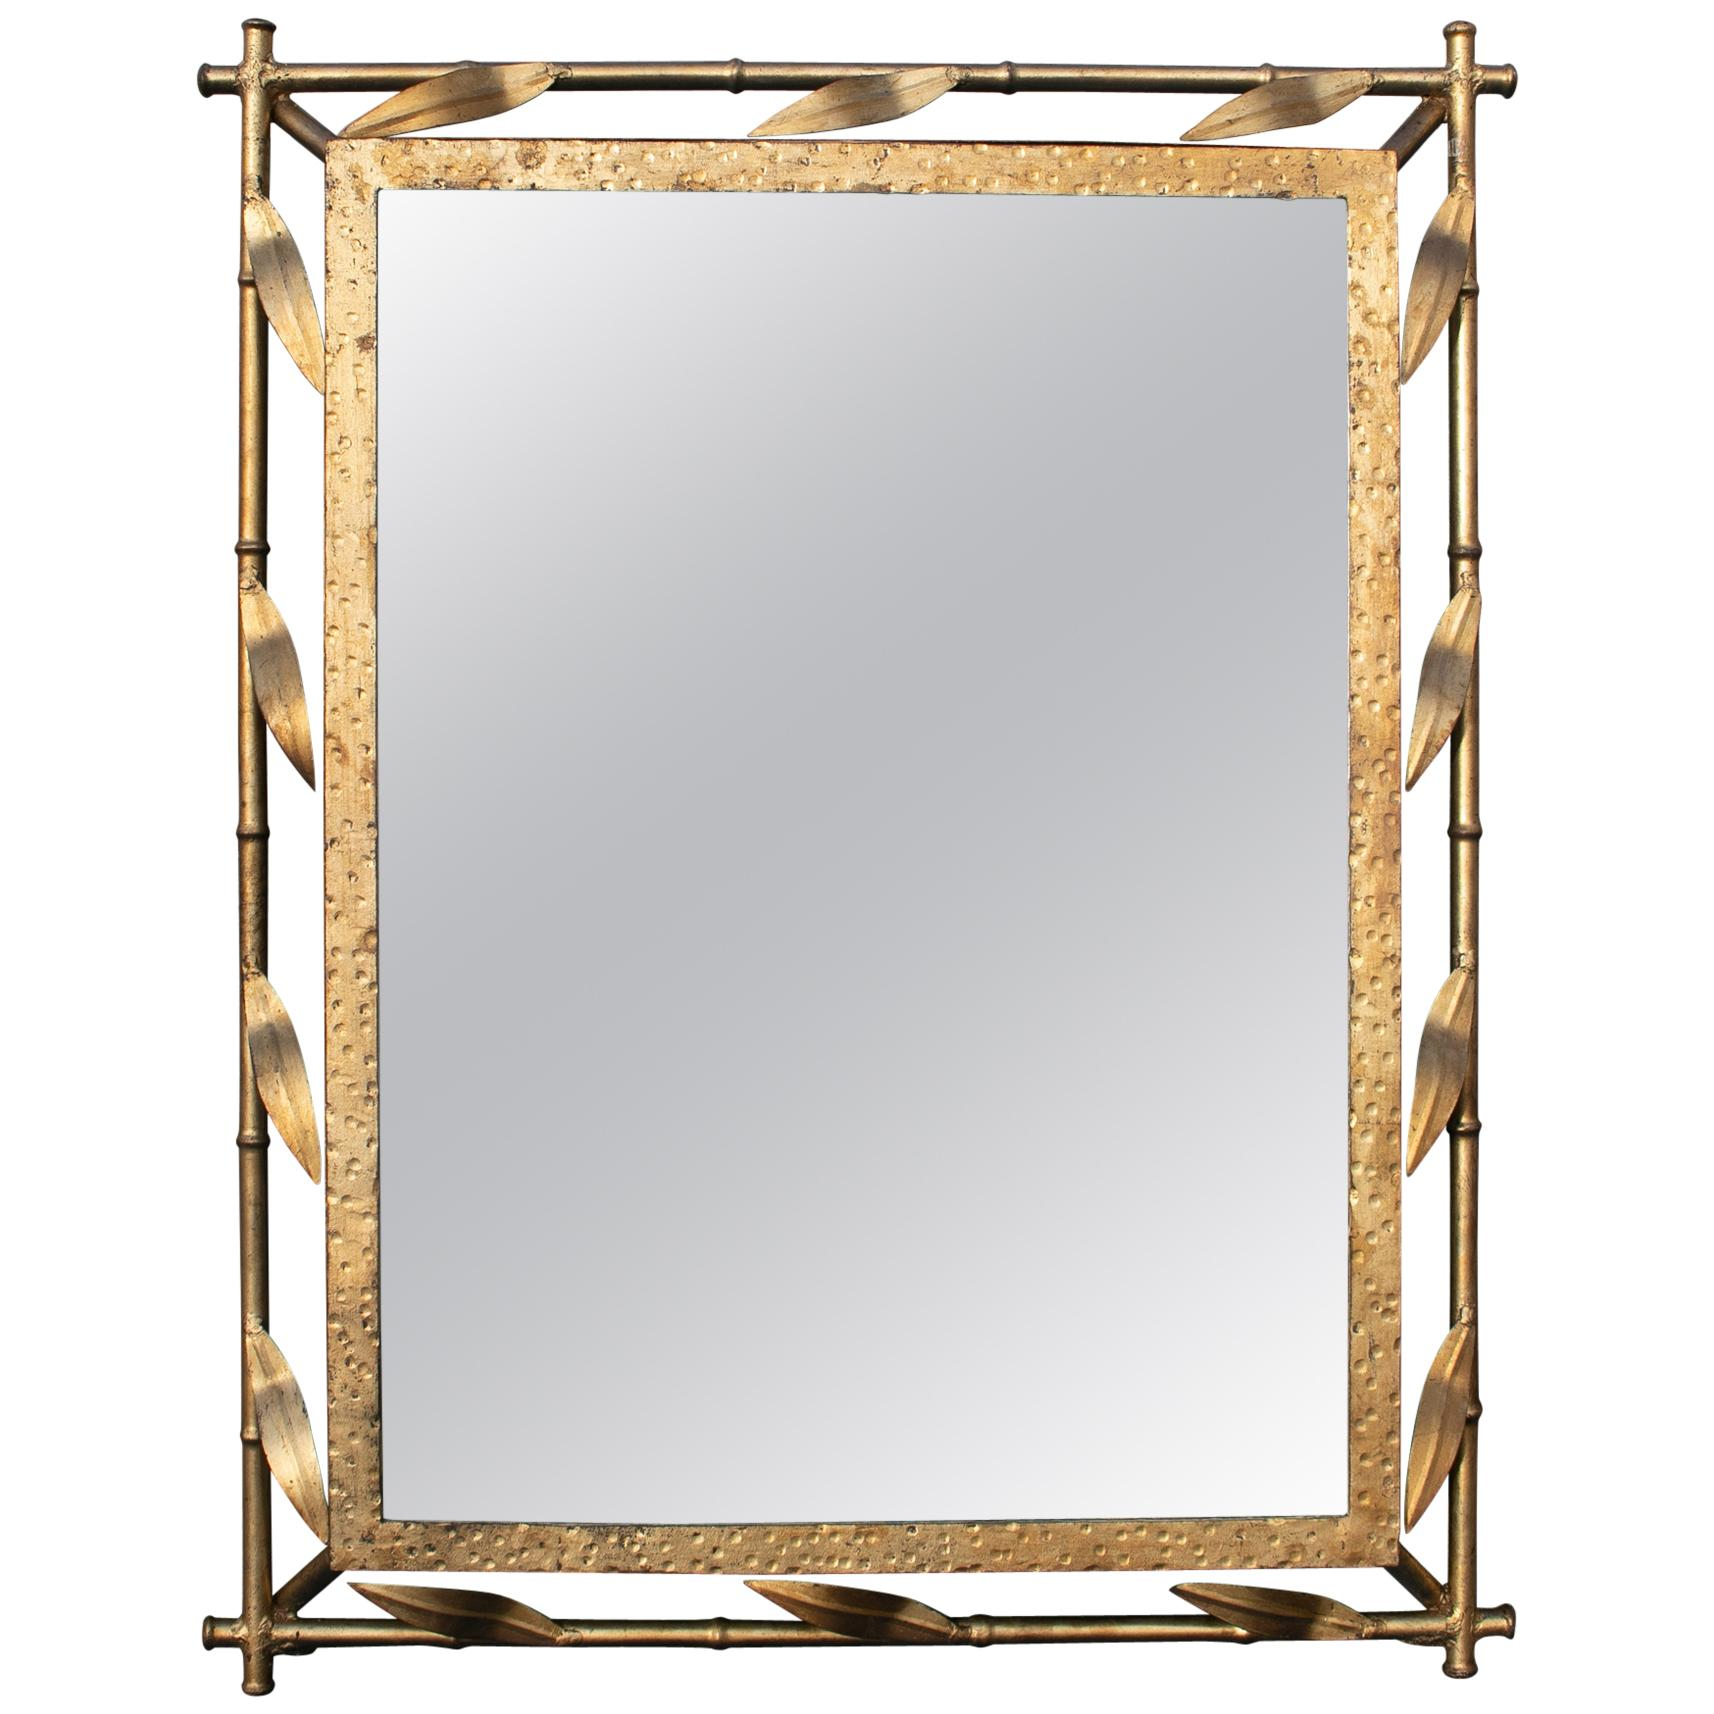 1970s Spanish Faux Bamboo and Leafs Golden Iron Mirror